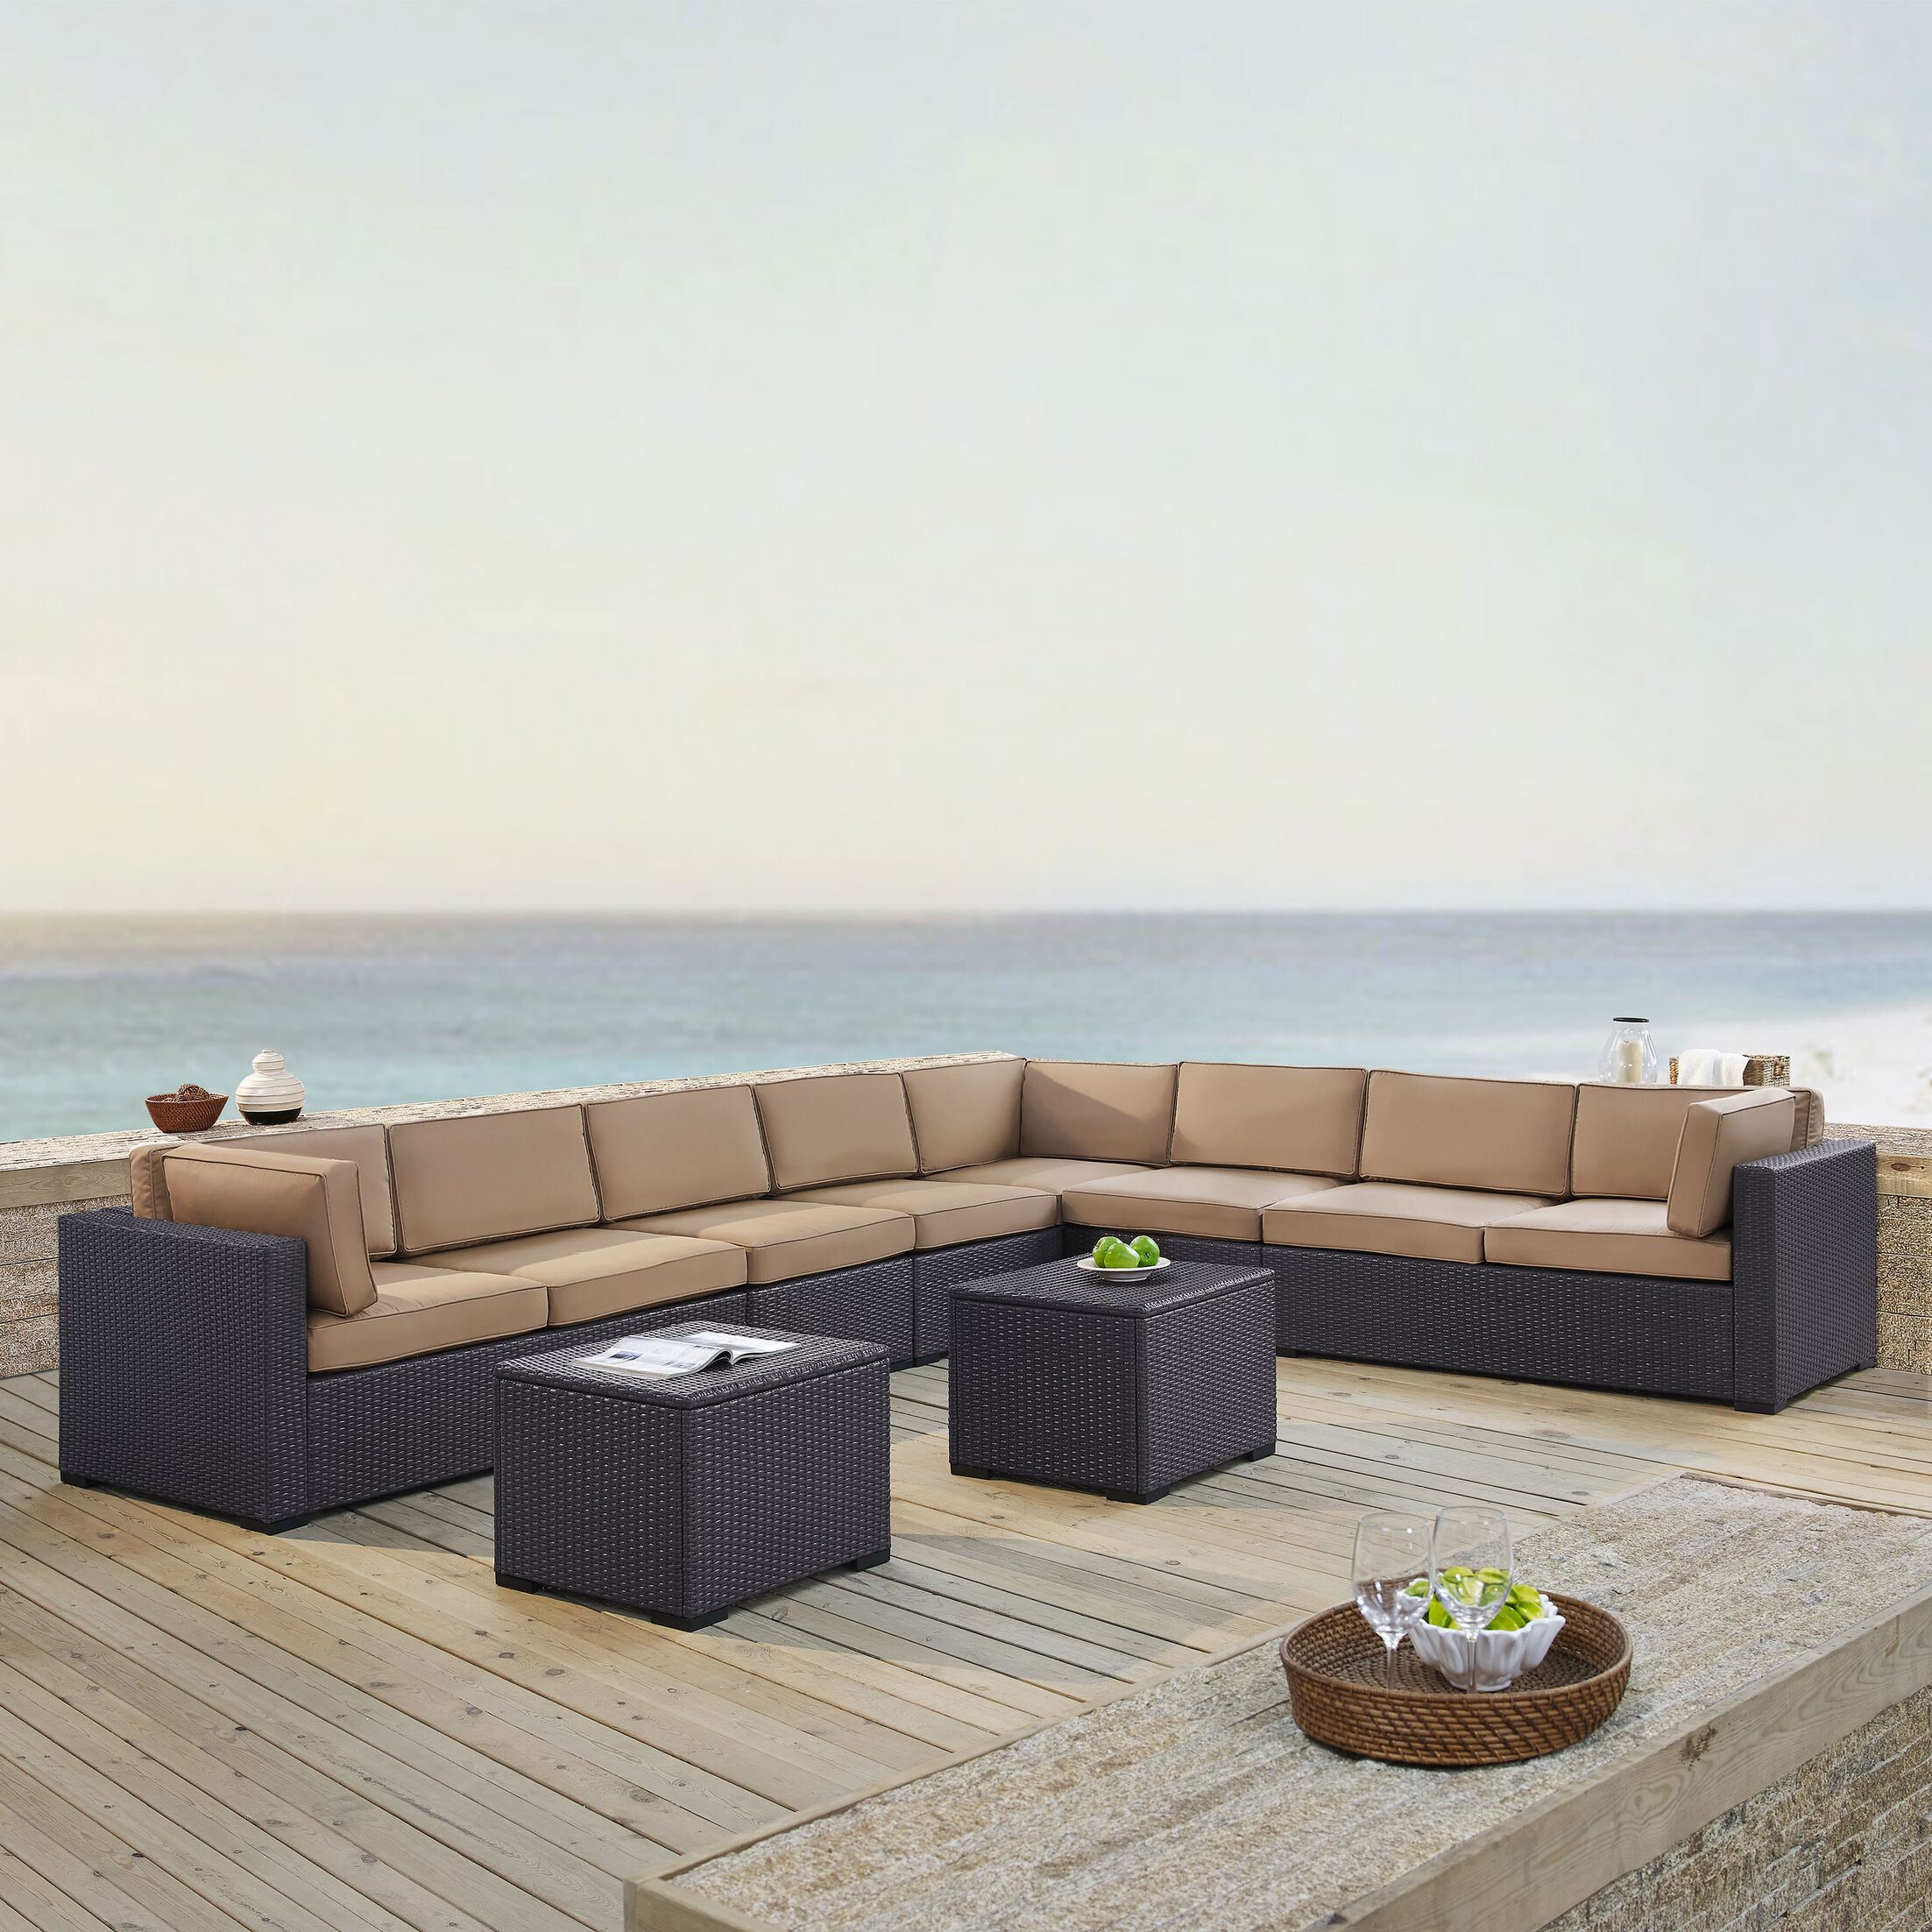 Dinah 6 Piece Sectional Set with Cushions Fabric: Mocha